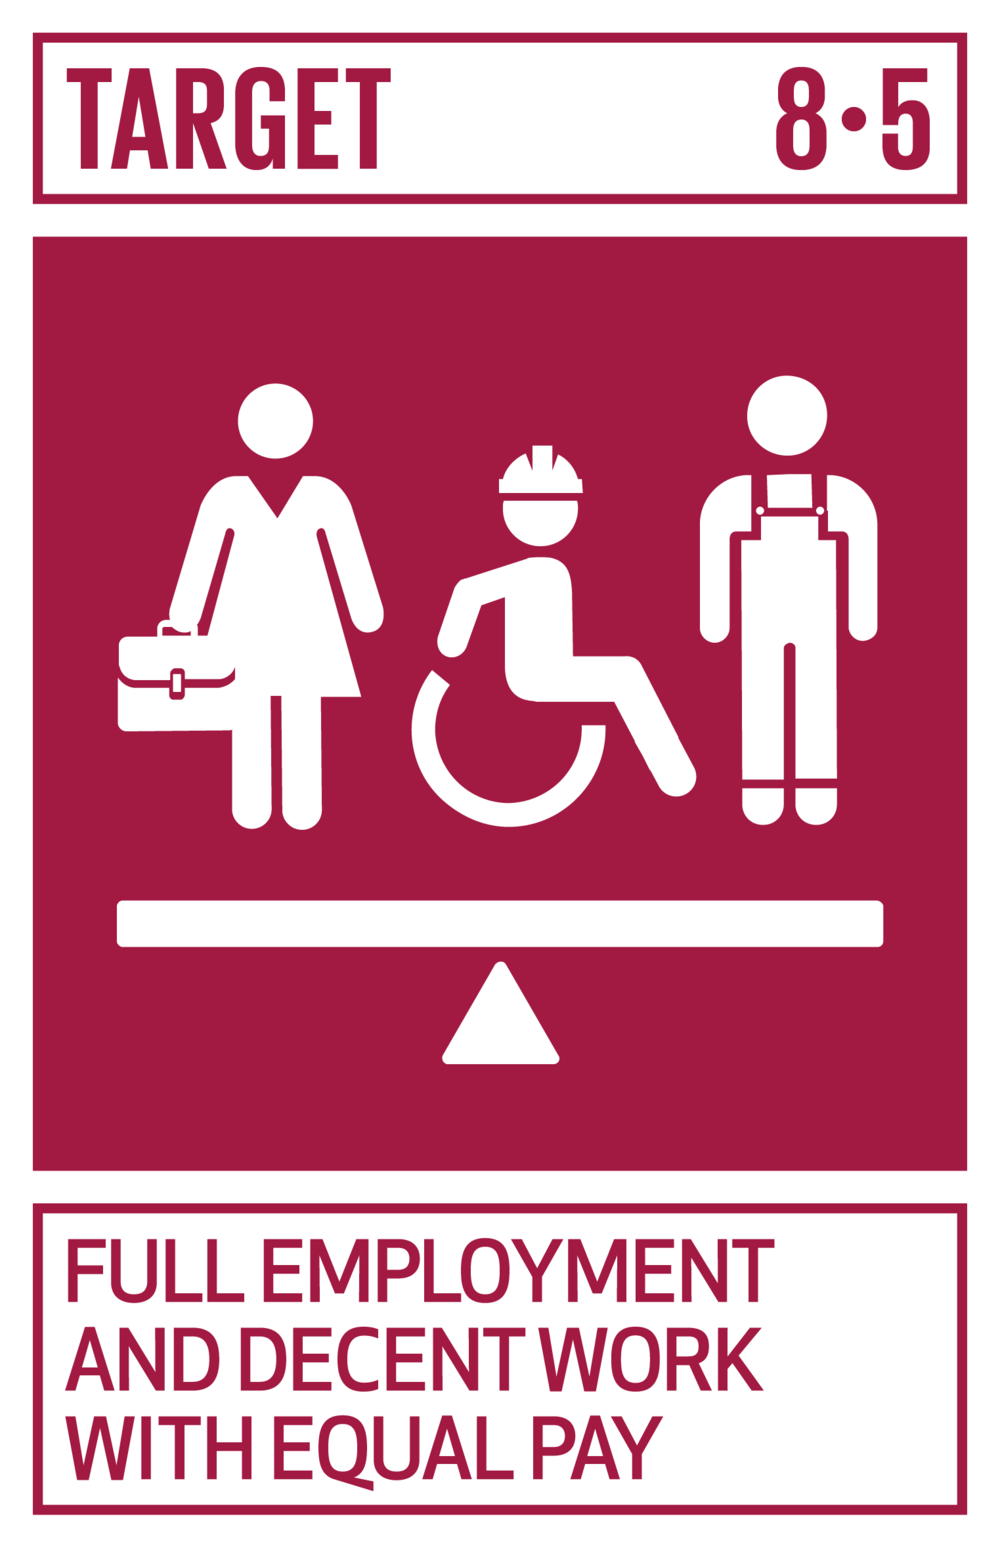 By 2030, achieve full and productive employment and decent work for all women and men, including for young people and persons with disabilities, and equal pay for work of equal value.   INDICATORS    8.5.1  Average hourly earnings of female and male employees, by occupation, age and persons with disabilities   8.5.2  Unemployment rate, by sex, age and persons with disabilities